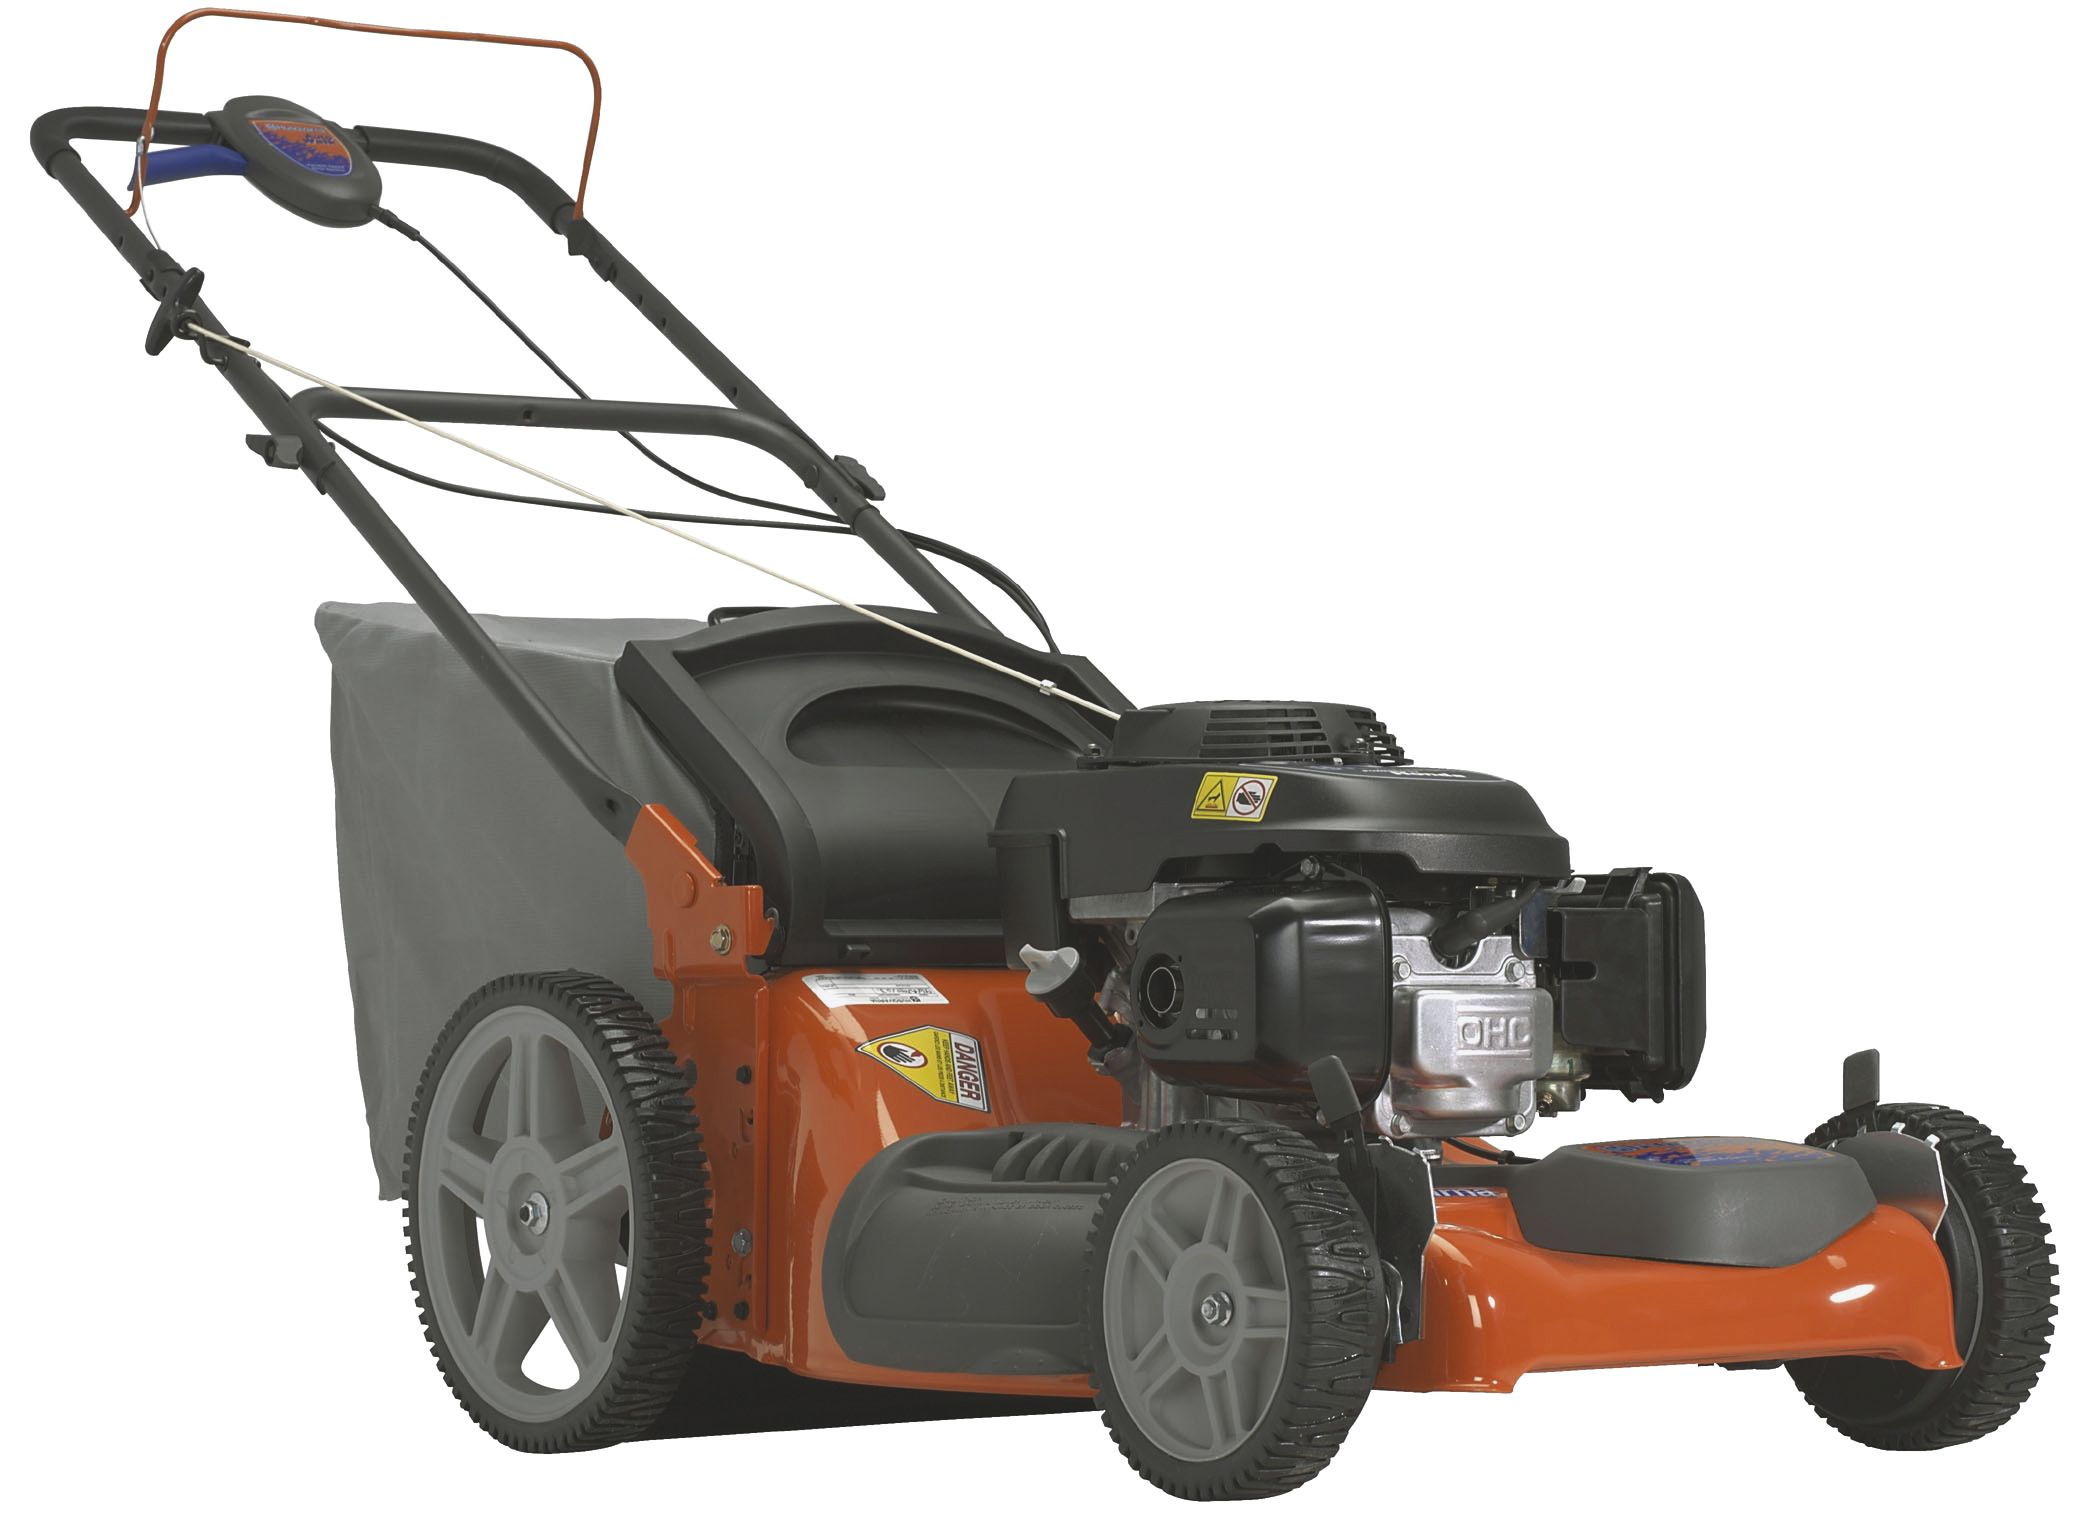 Husqvarna Lawn Mower Parts >> Husqvarna Lawn Mower Model 5521chvx Parts Repair Help